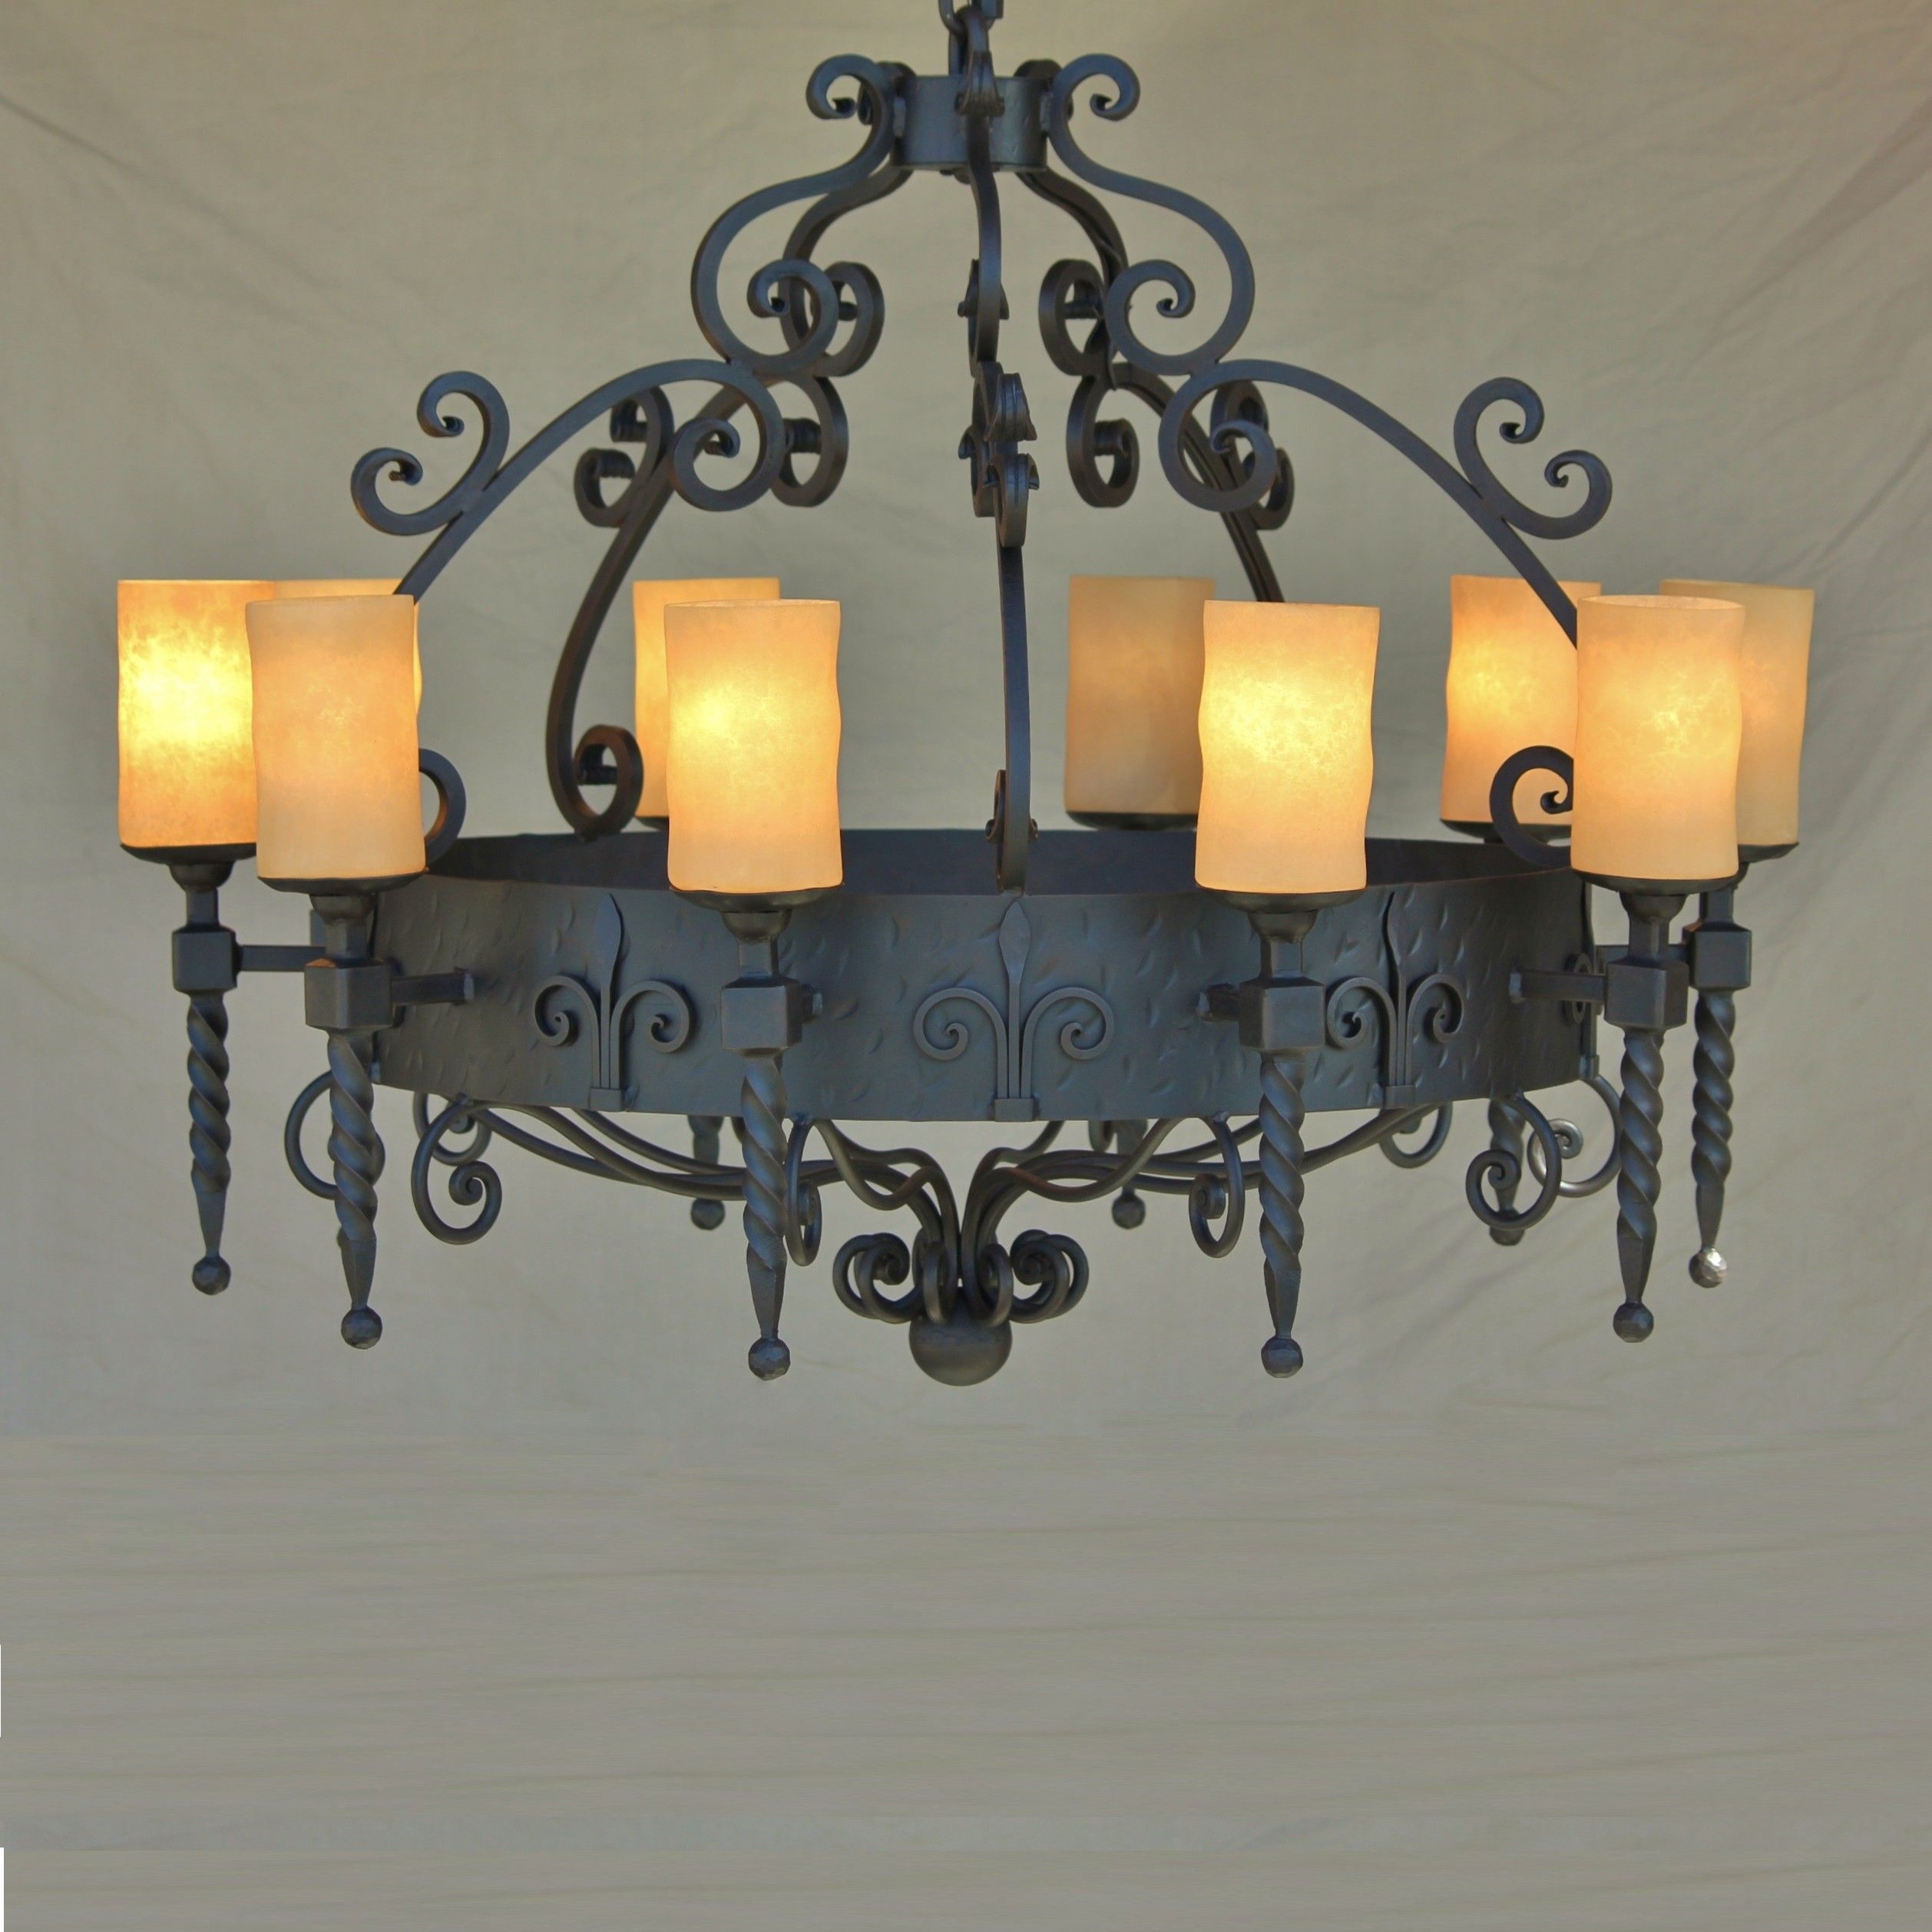 Spanish Revival Chandelier Ceiling Chandelierceiling Fixtureswrought Iron